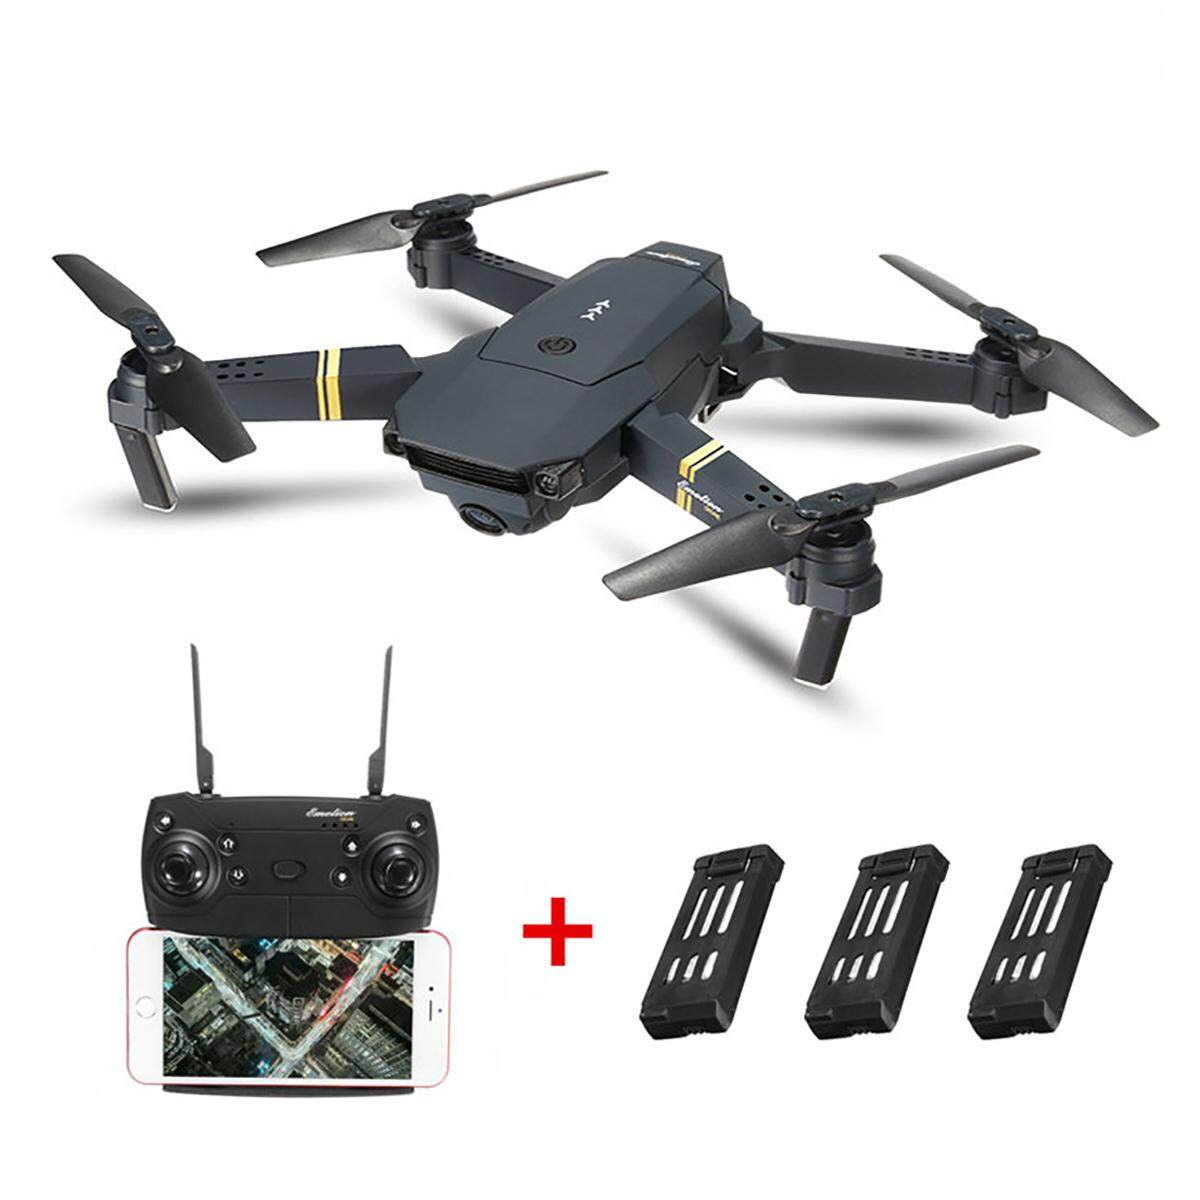 Eachine Buy At Best Price In Malaysia Prodvr Pro Dvr Mini Video Audio Recorder For Fpv Multicopters E58 Wifi With 03mp Camera High Hold Mode Foldable Rc Drone Quadcopter Rtf